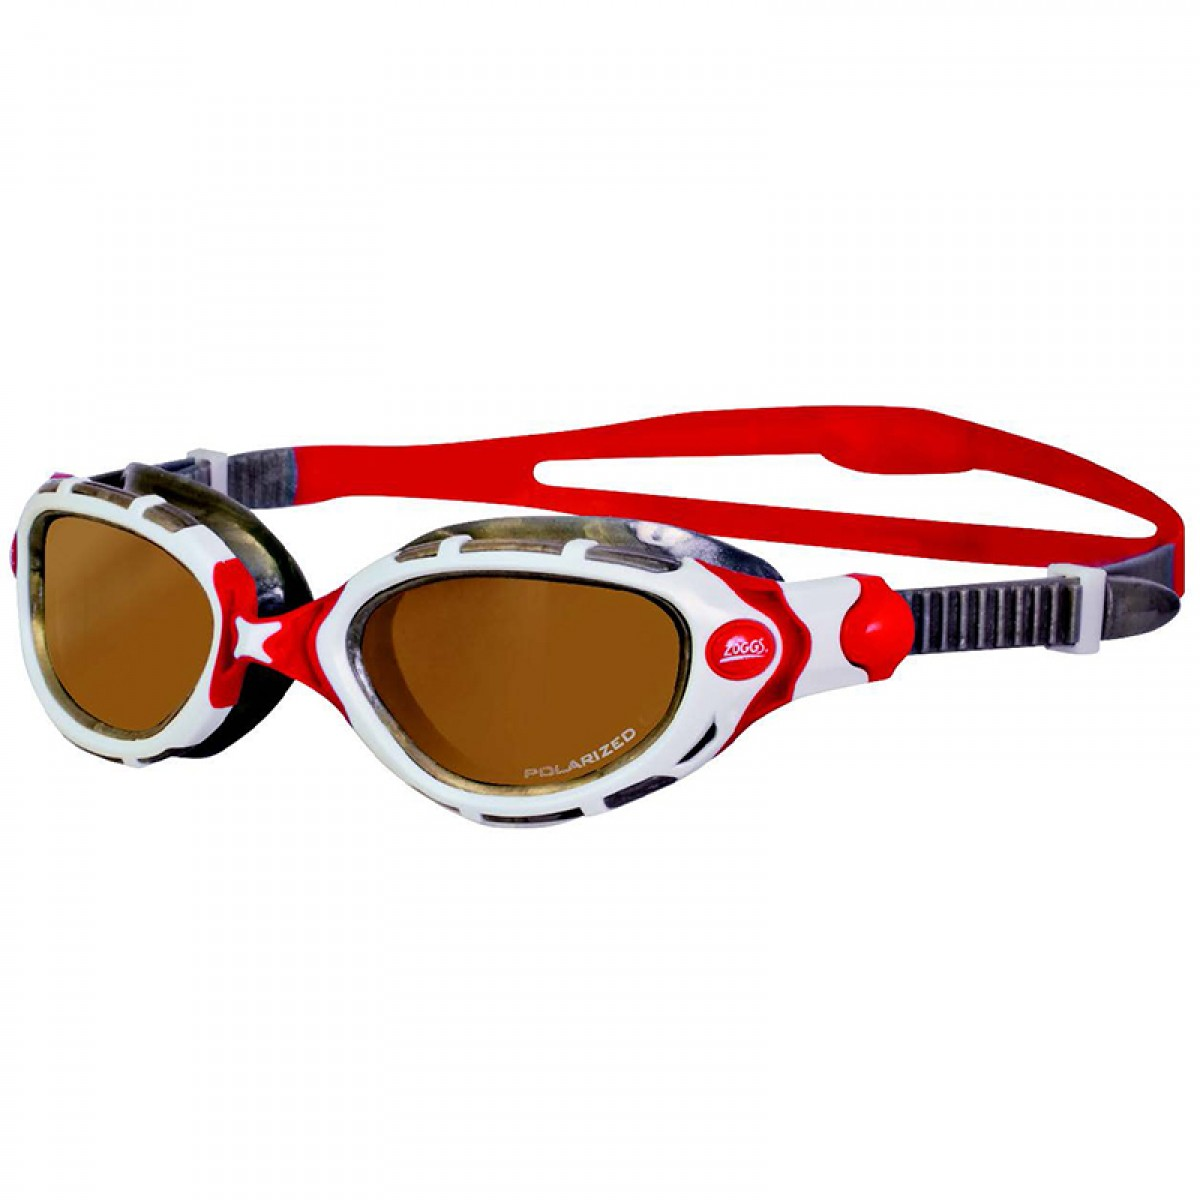 predator_flex_polarized_ultra_originalsquare.jpg